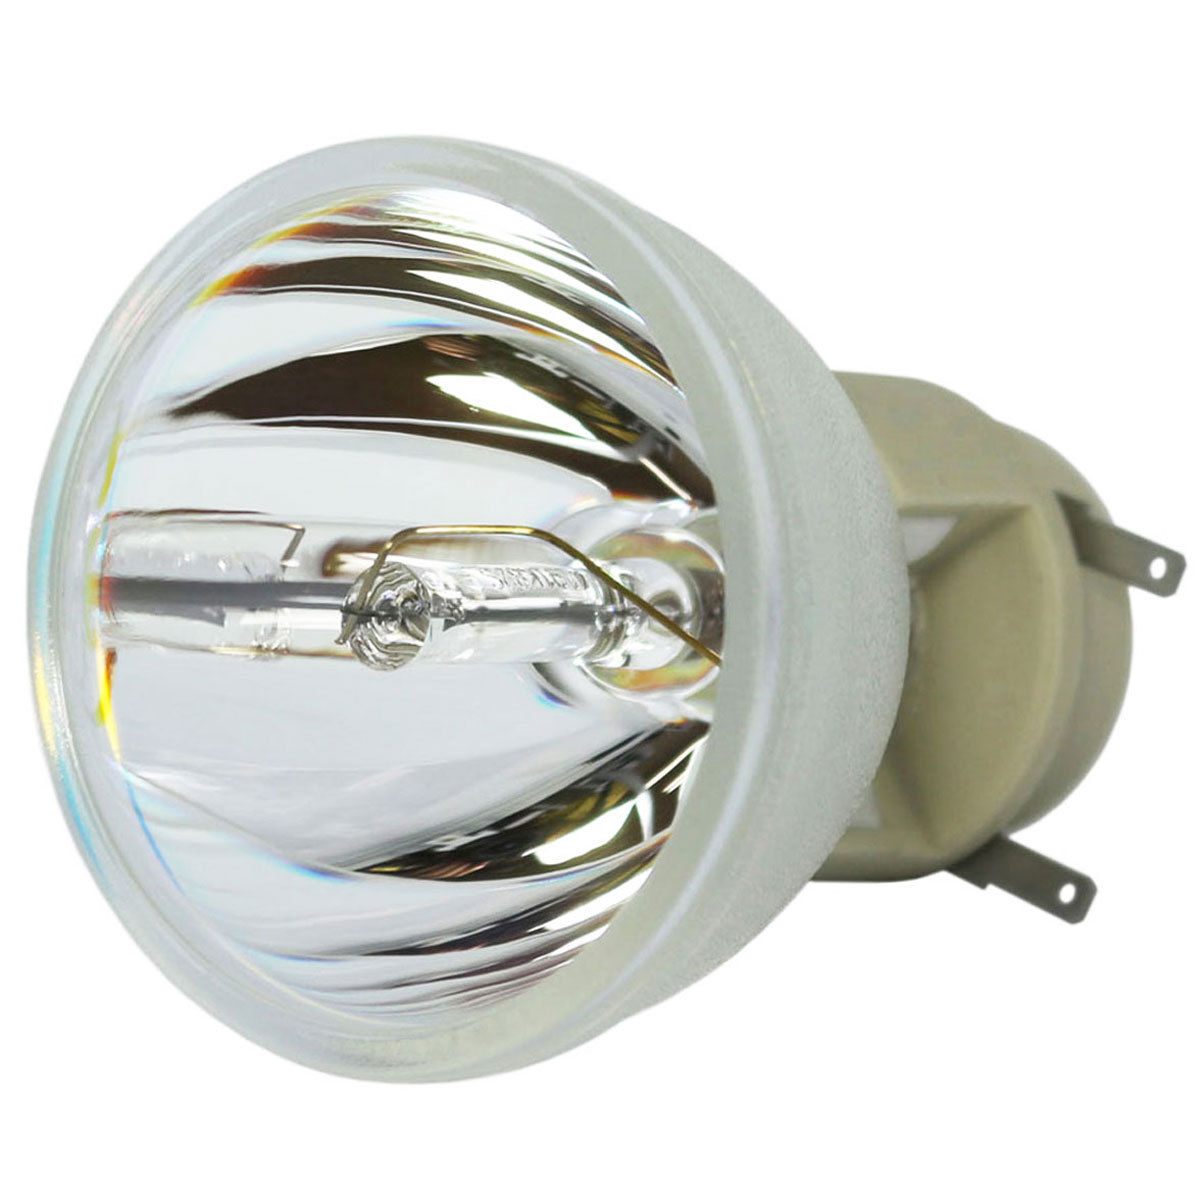 Compatible Bare Bulb BL-FP190A BLFP190A SP.8TK01GC01 for OPTOMA S300 S300+ X300 DS325 DX325 Projector Lamp Bulb Without Housing<br>